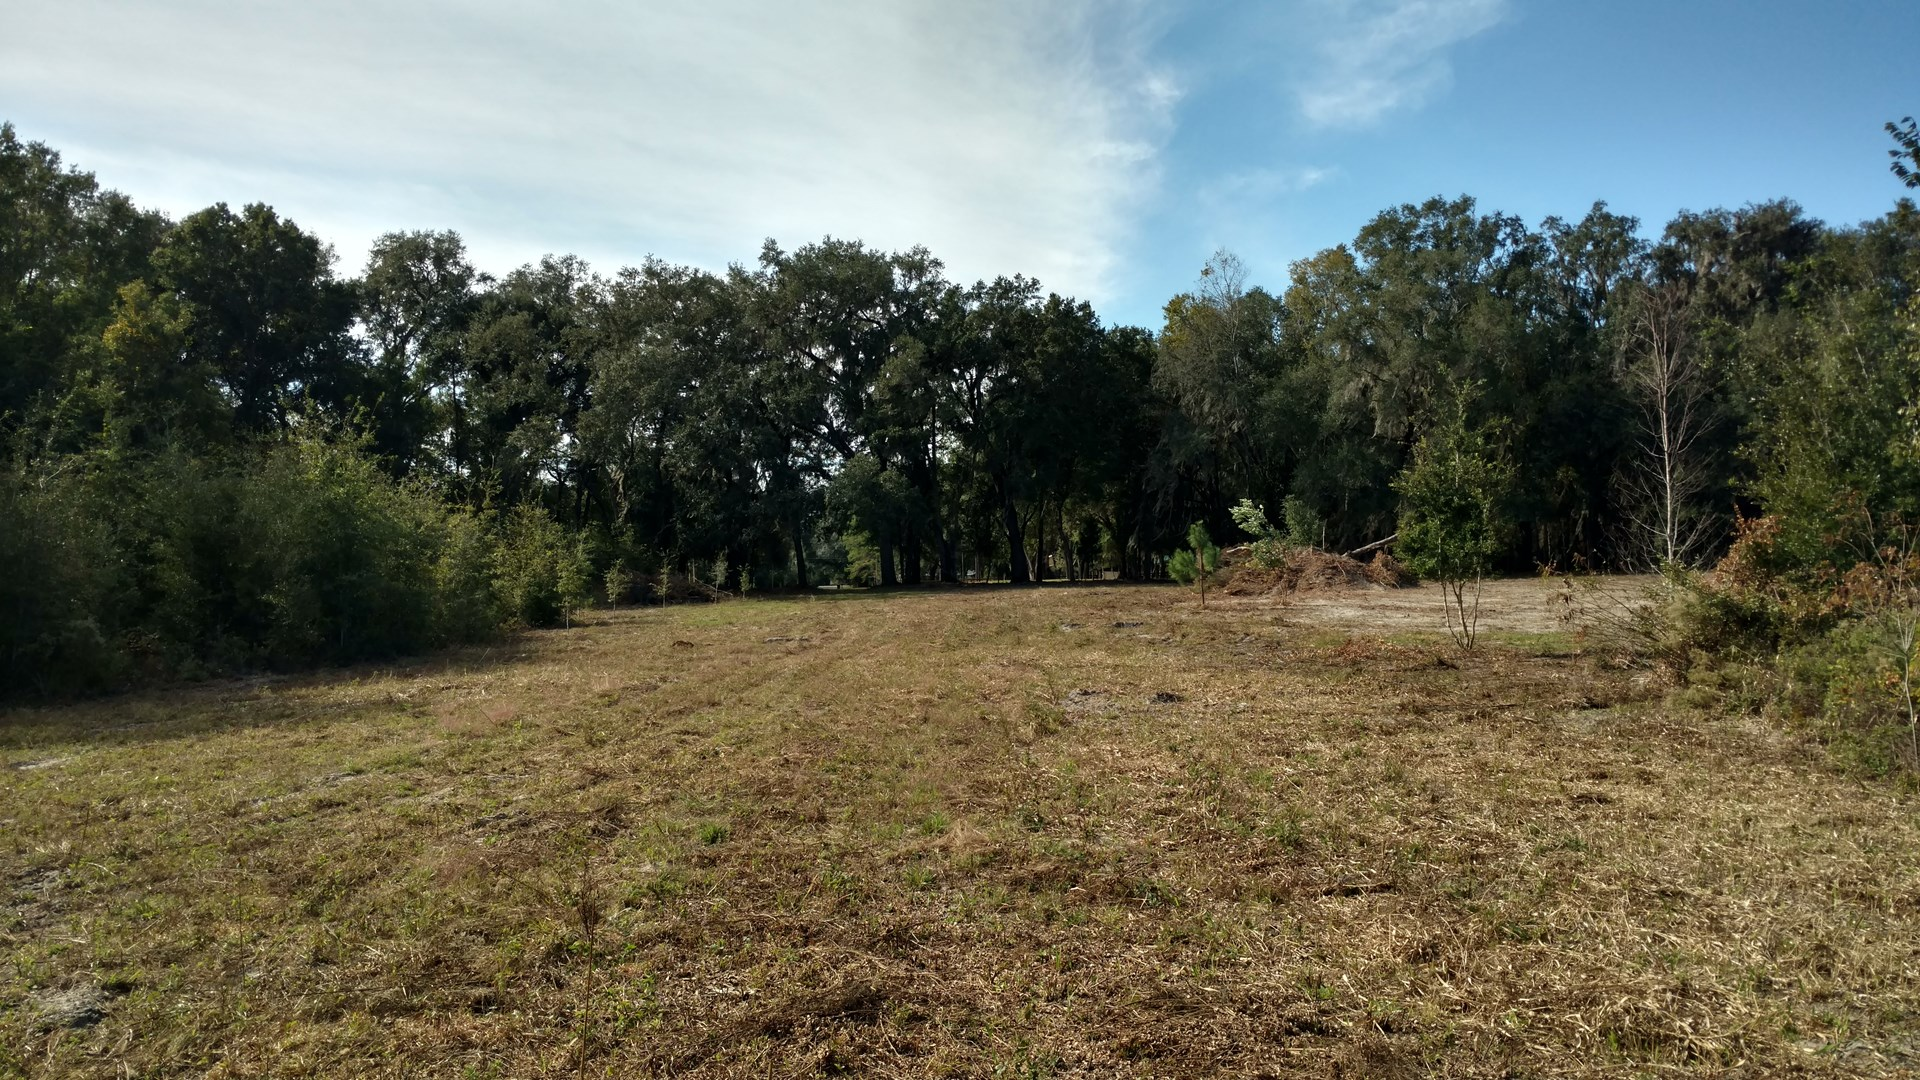 39.21 ACRES FOR SALE IN LAKE CITY, FL!